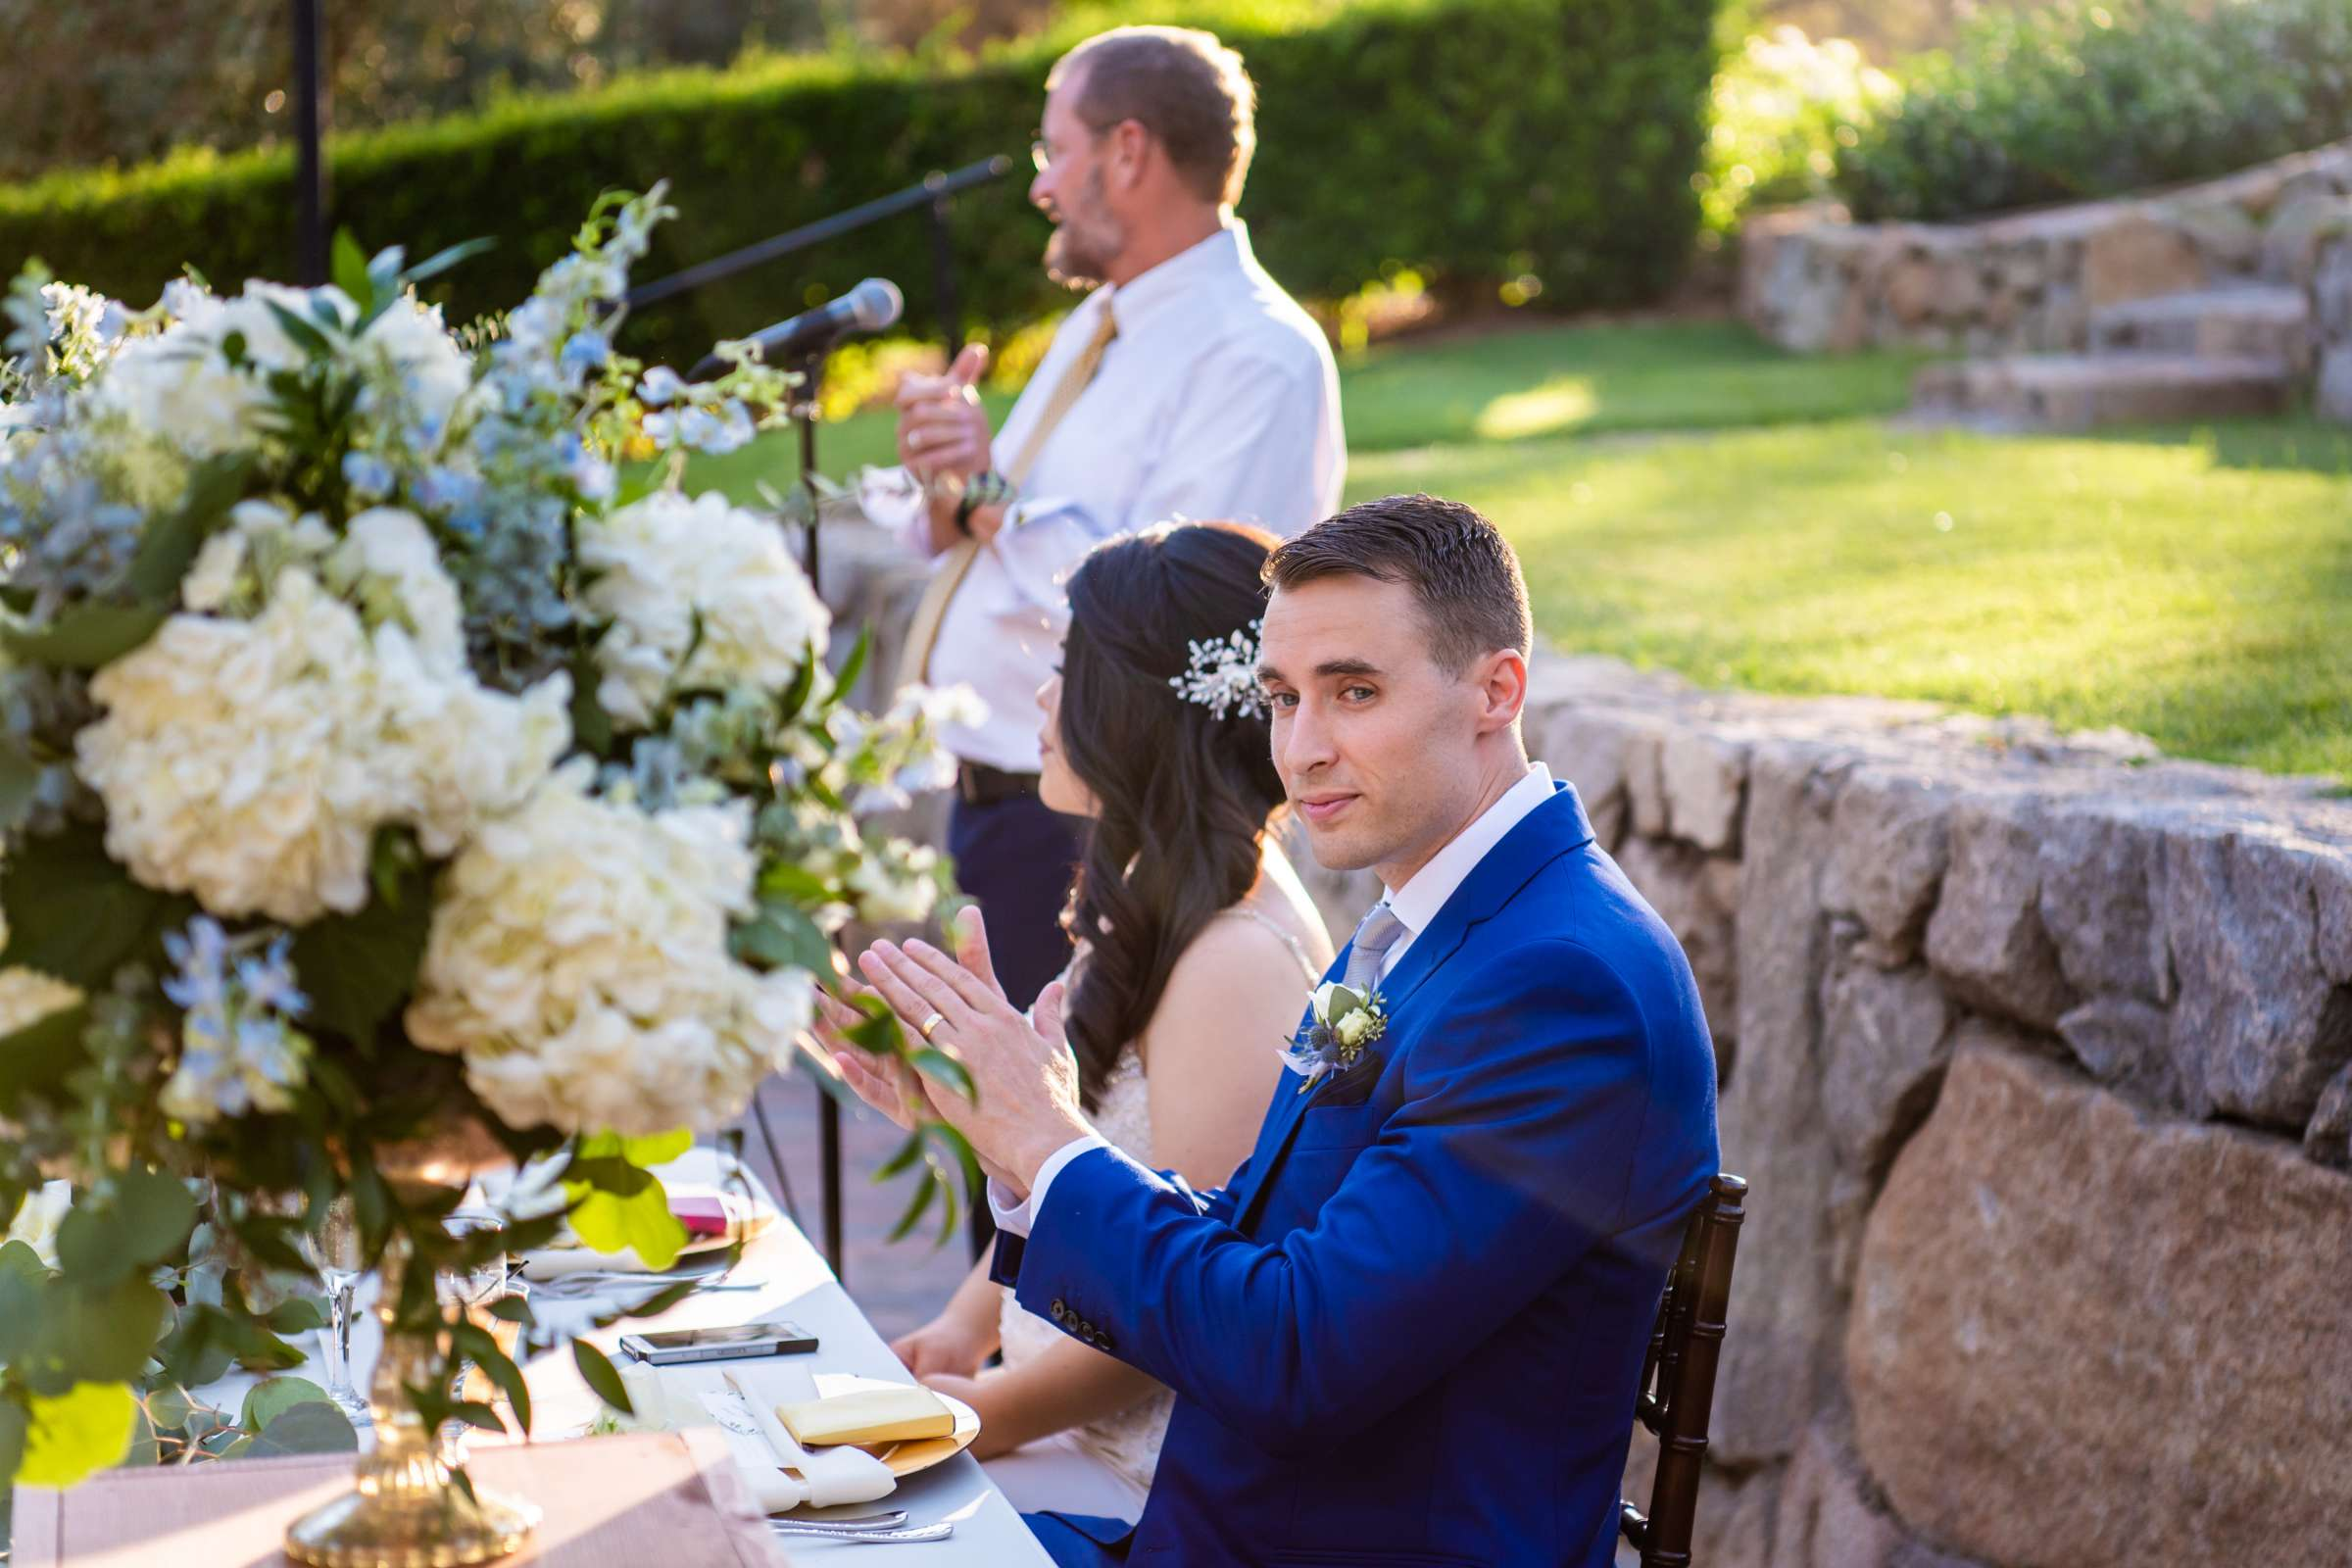 Mt Woodson Castle Wedding coordinated by I Do Weddings, Aya and Jared Wedding Photo #486982 by True Photography